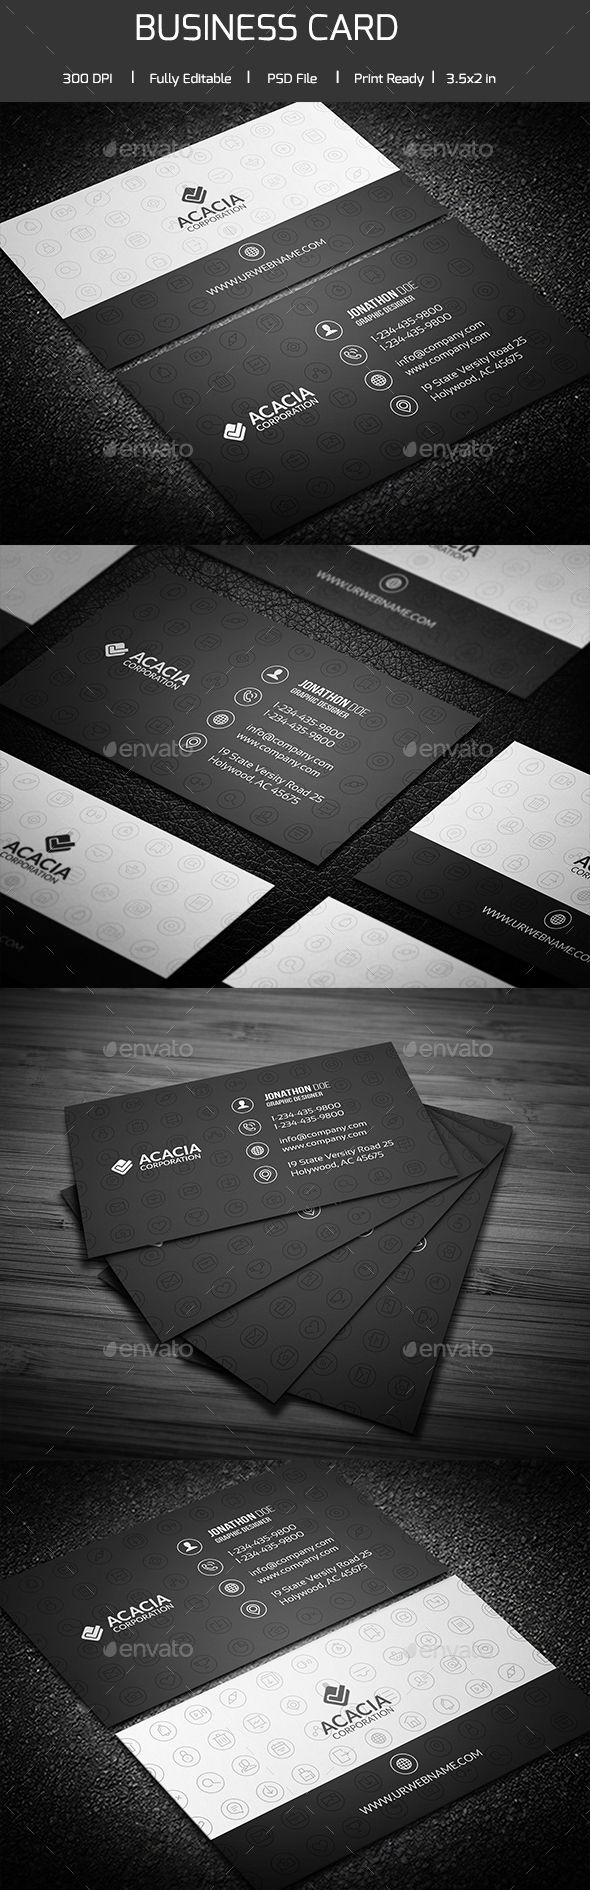 Social icon business card social icons business cards and icons social icon business card photoshop psd indesign print available here https reheart Choice Image